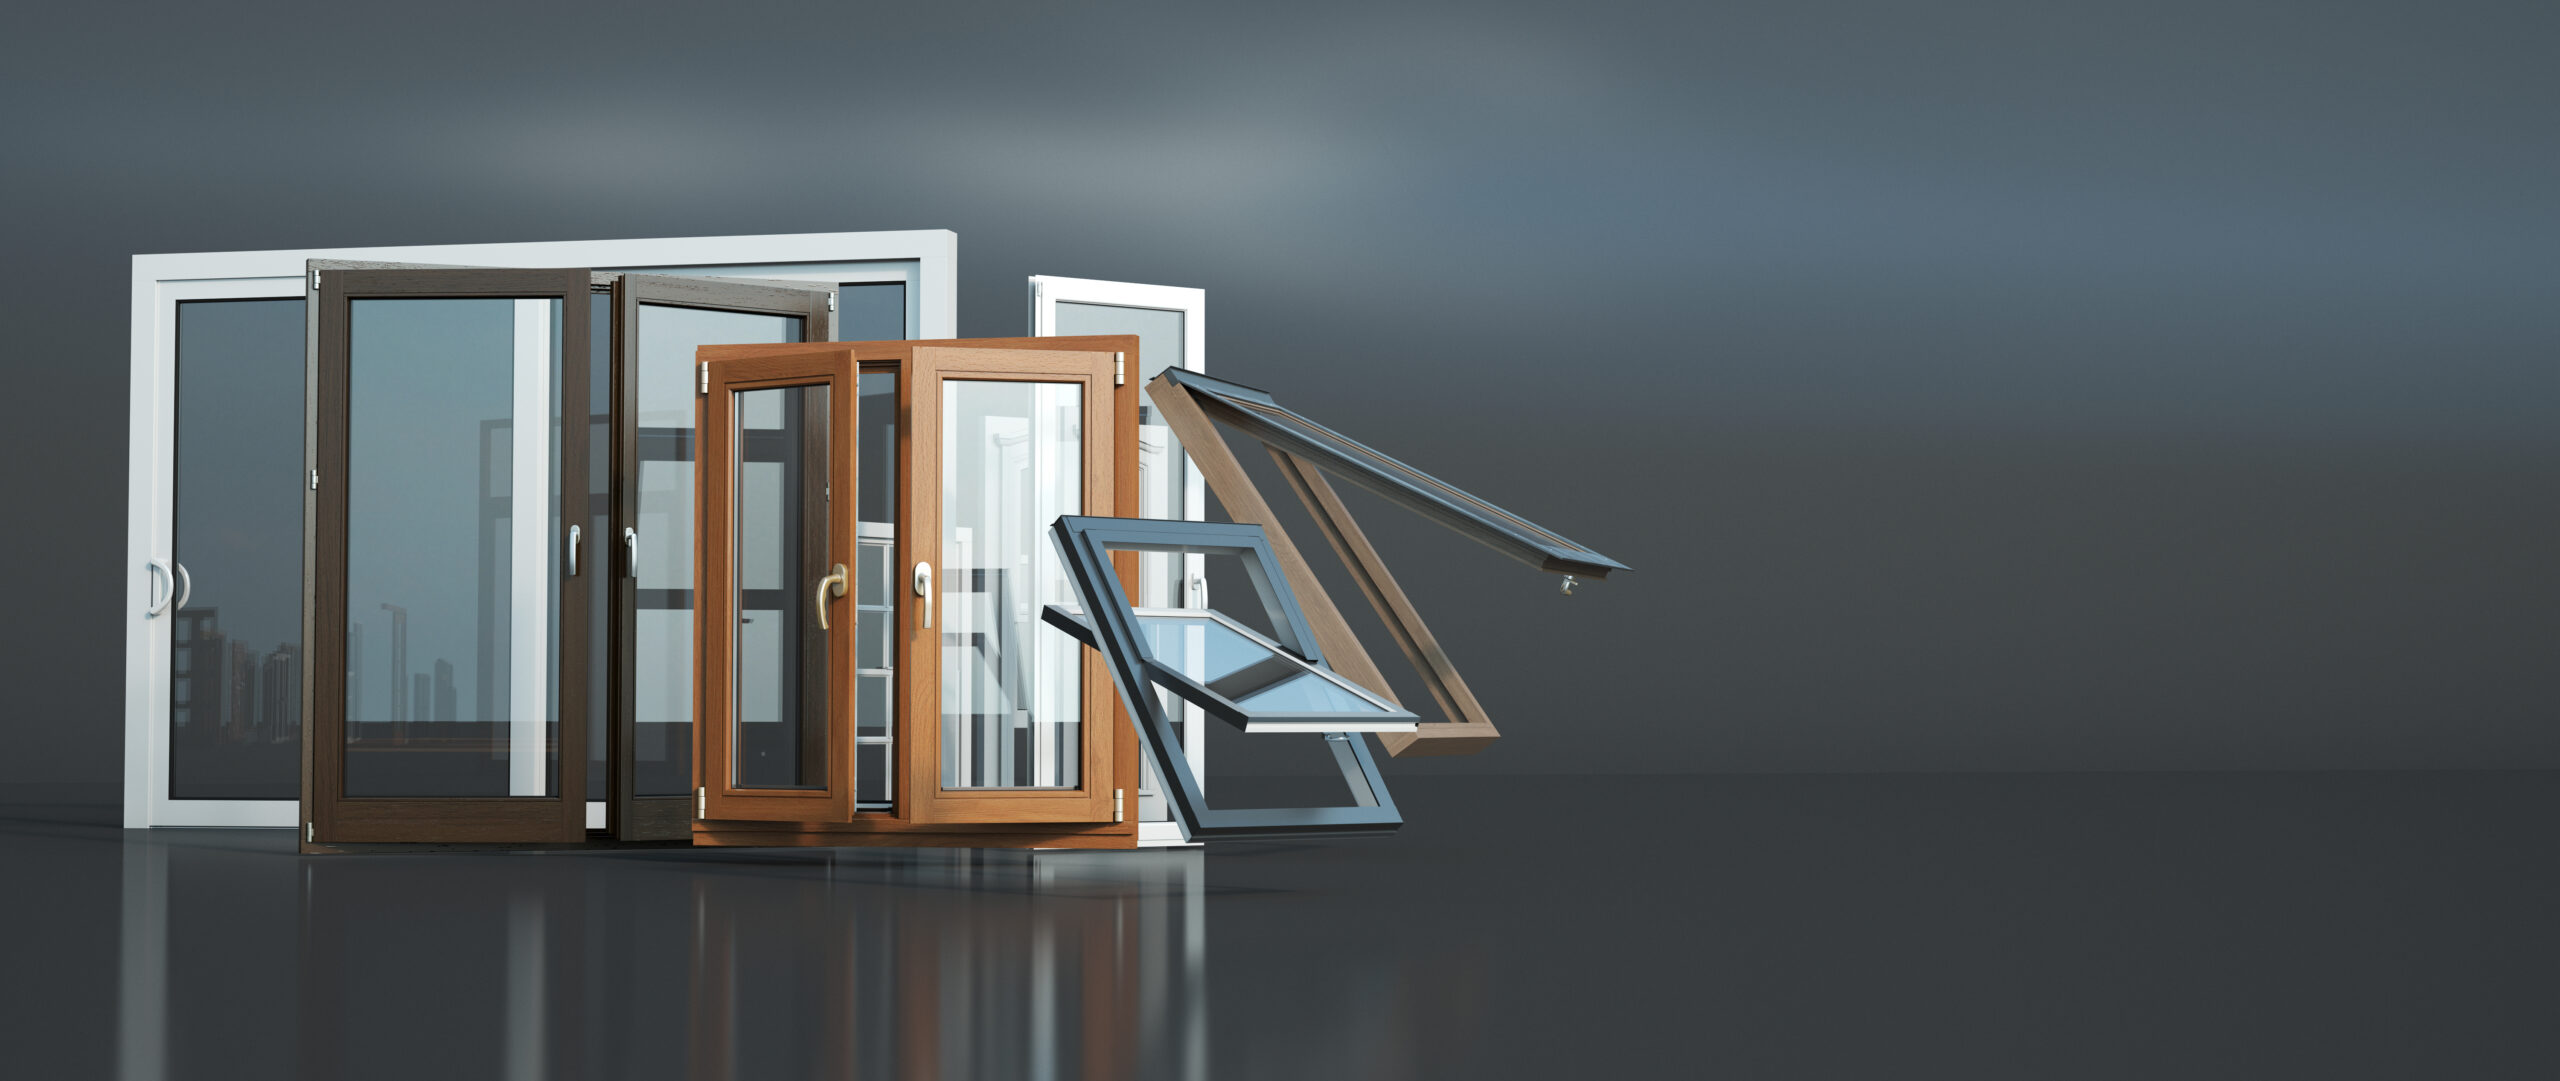 3d,Rendering,Of,A,Selection,Of,Windows,Of,Different,Types